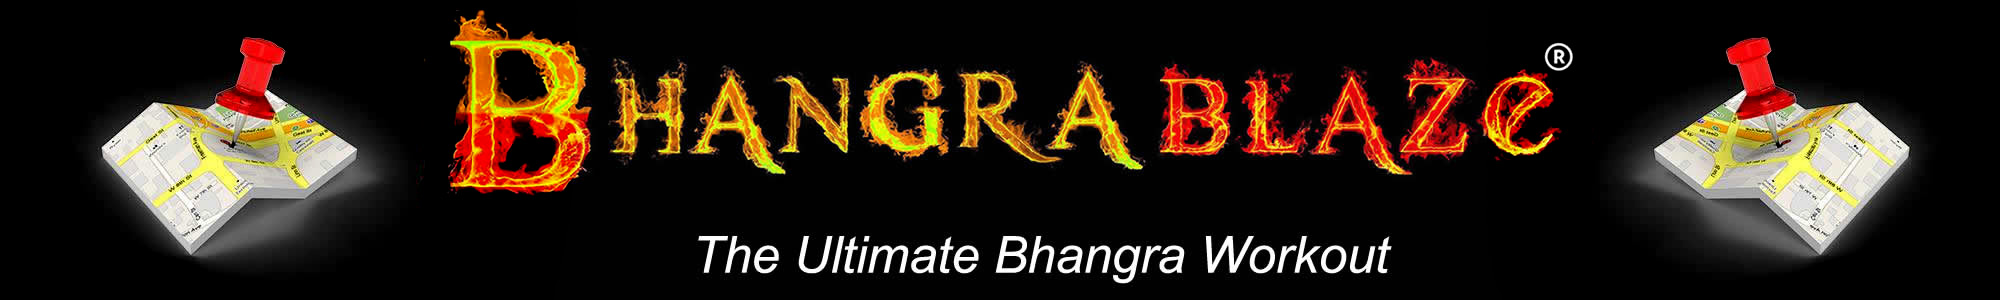 BhangraBlaze find classes